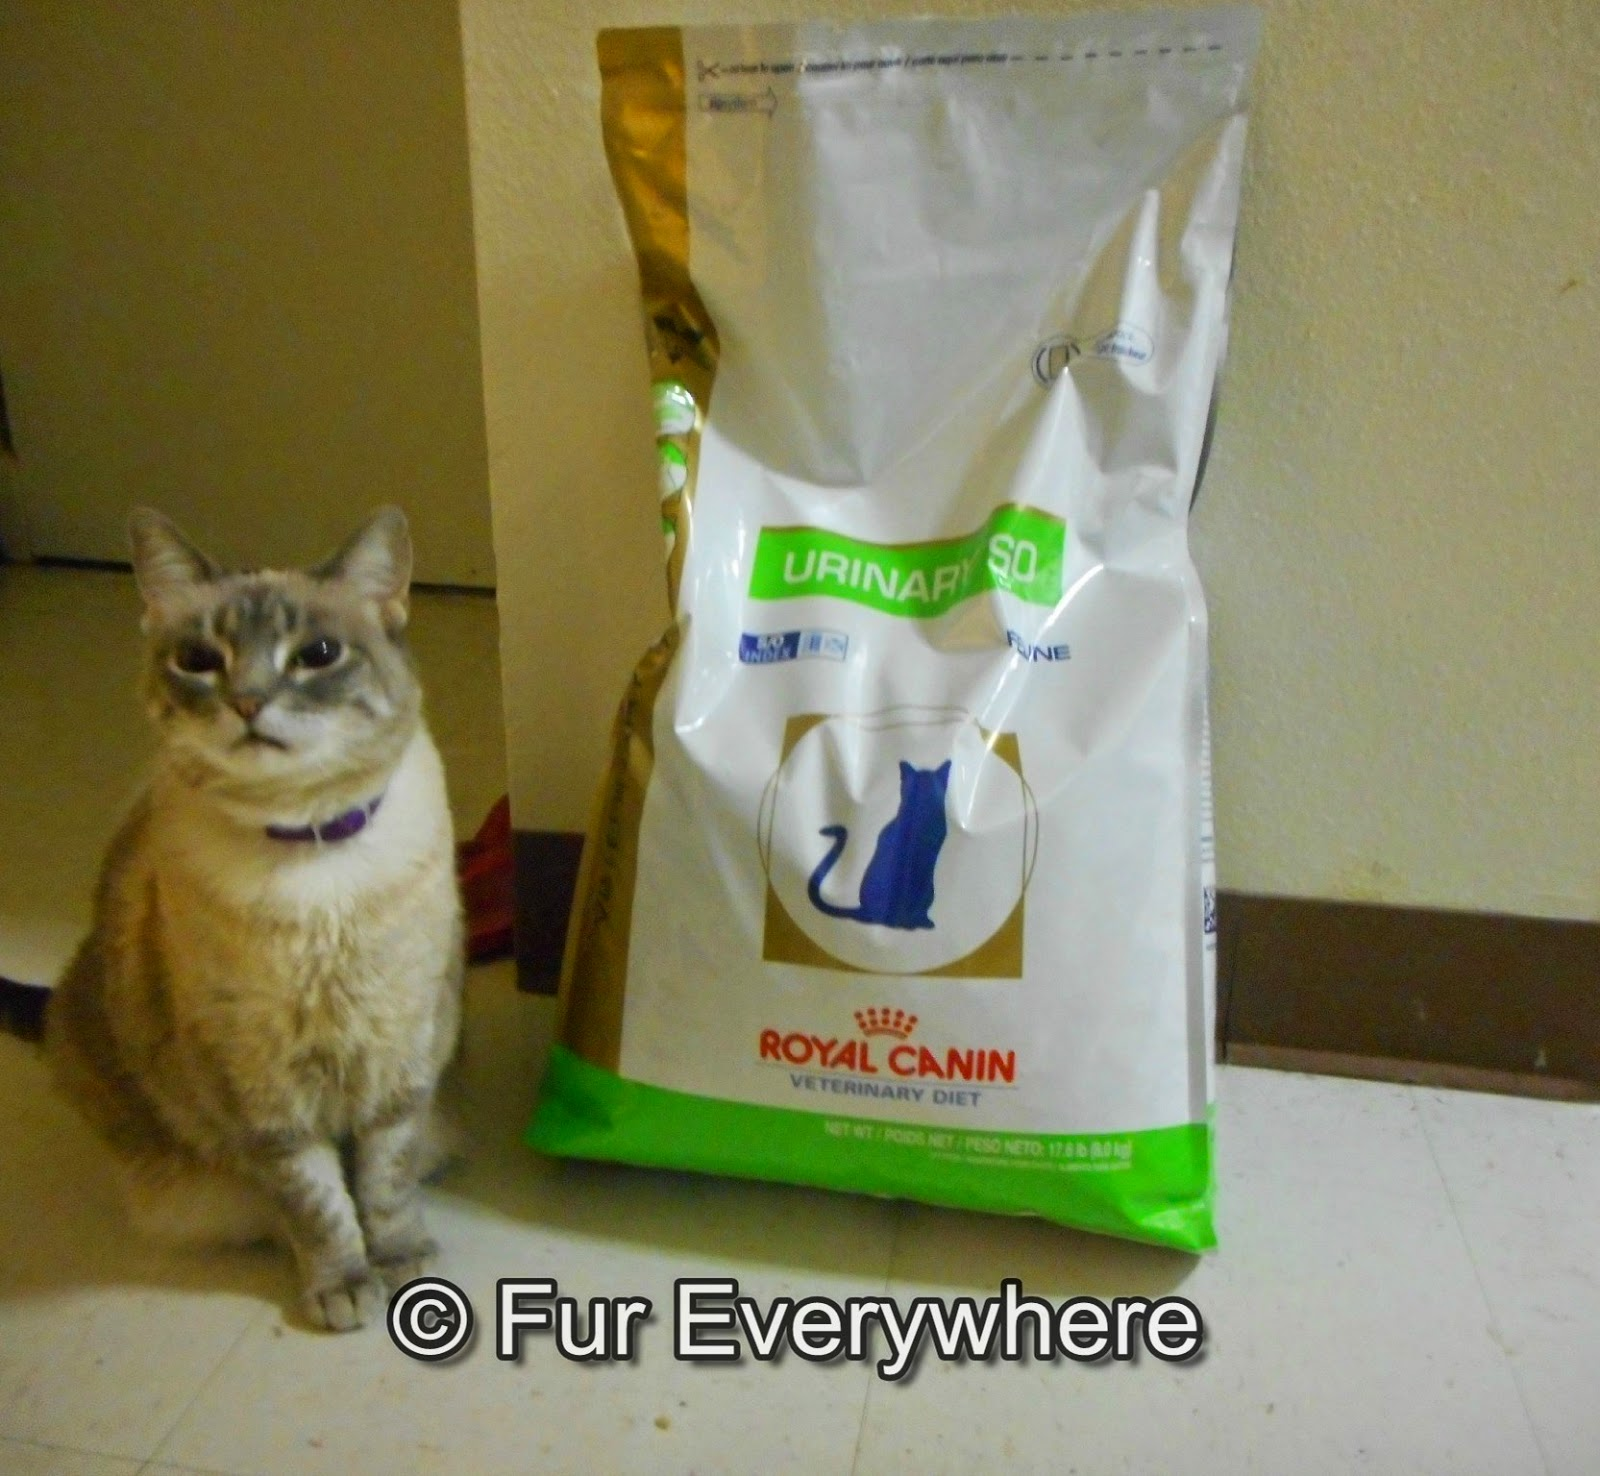 Siamese cat with Royal Canin prescription SO dry cat food